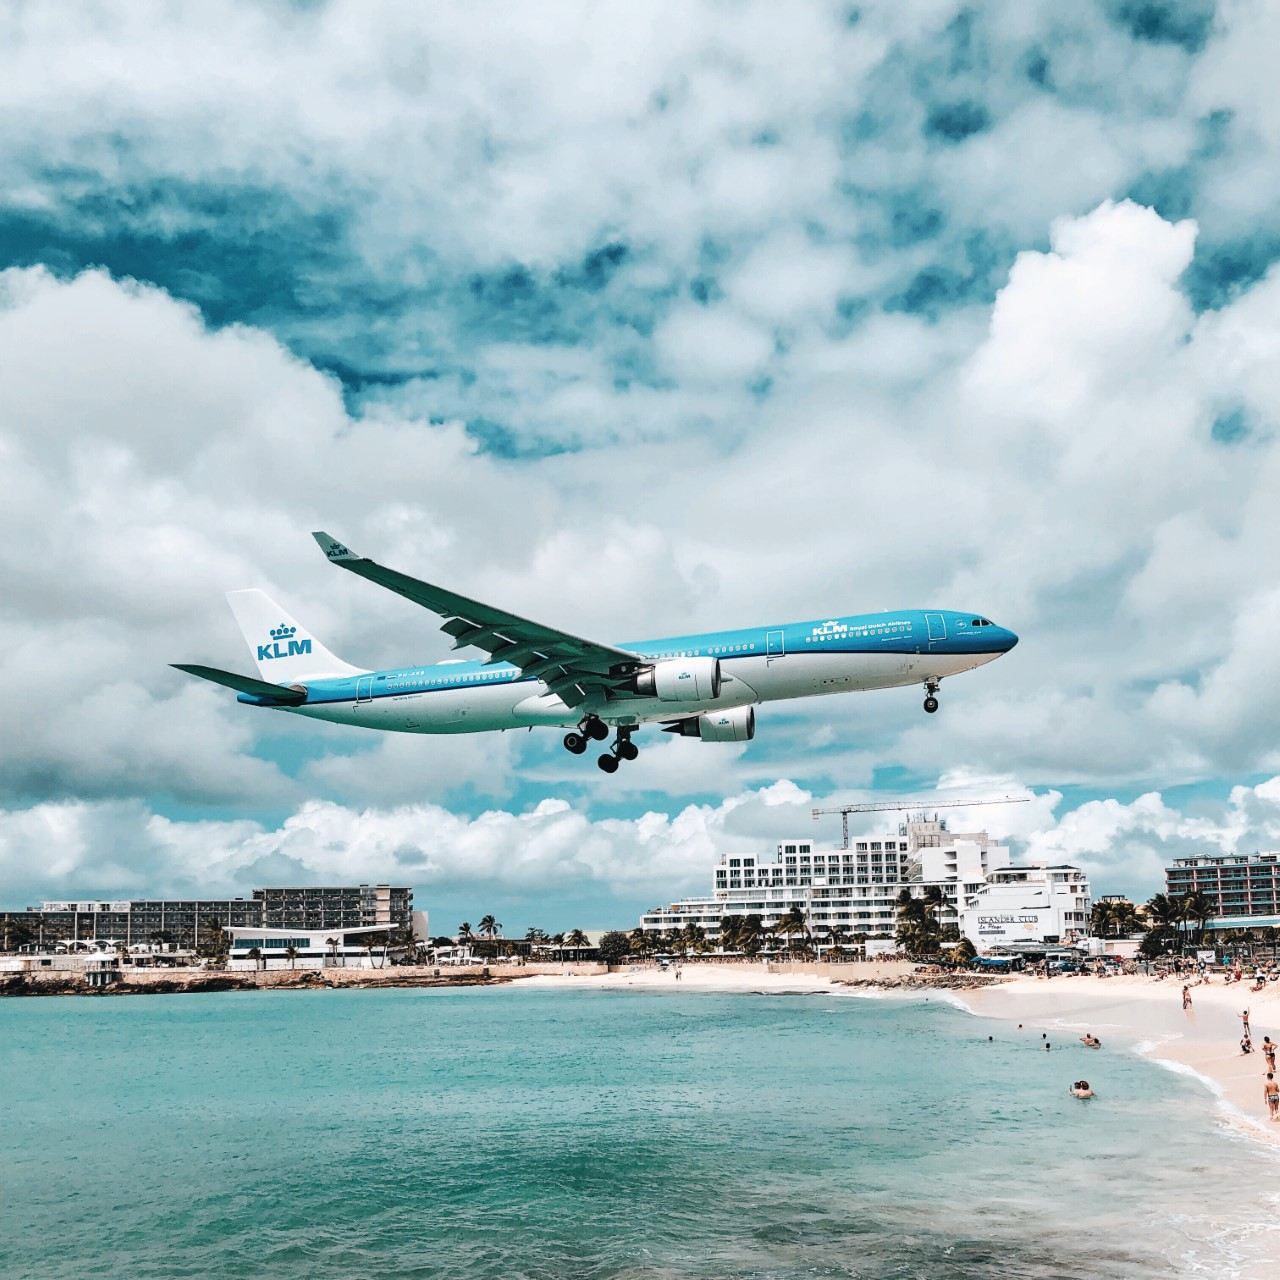 Plane Spotting in St Maarten - A Day at Maho Beach - Caribbean